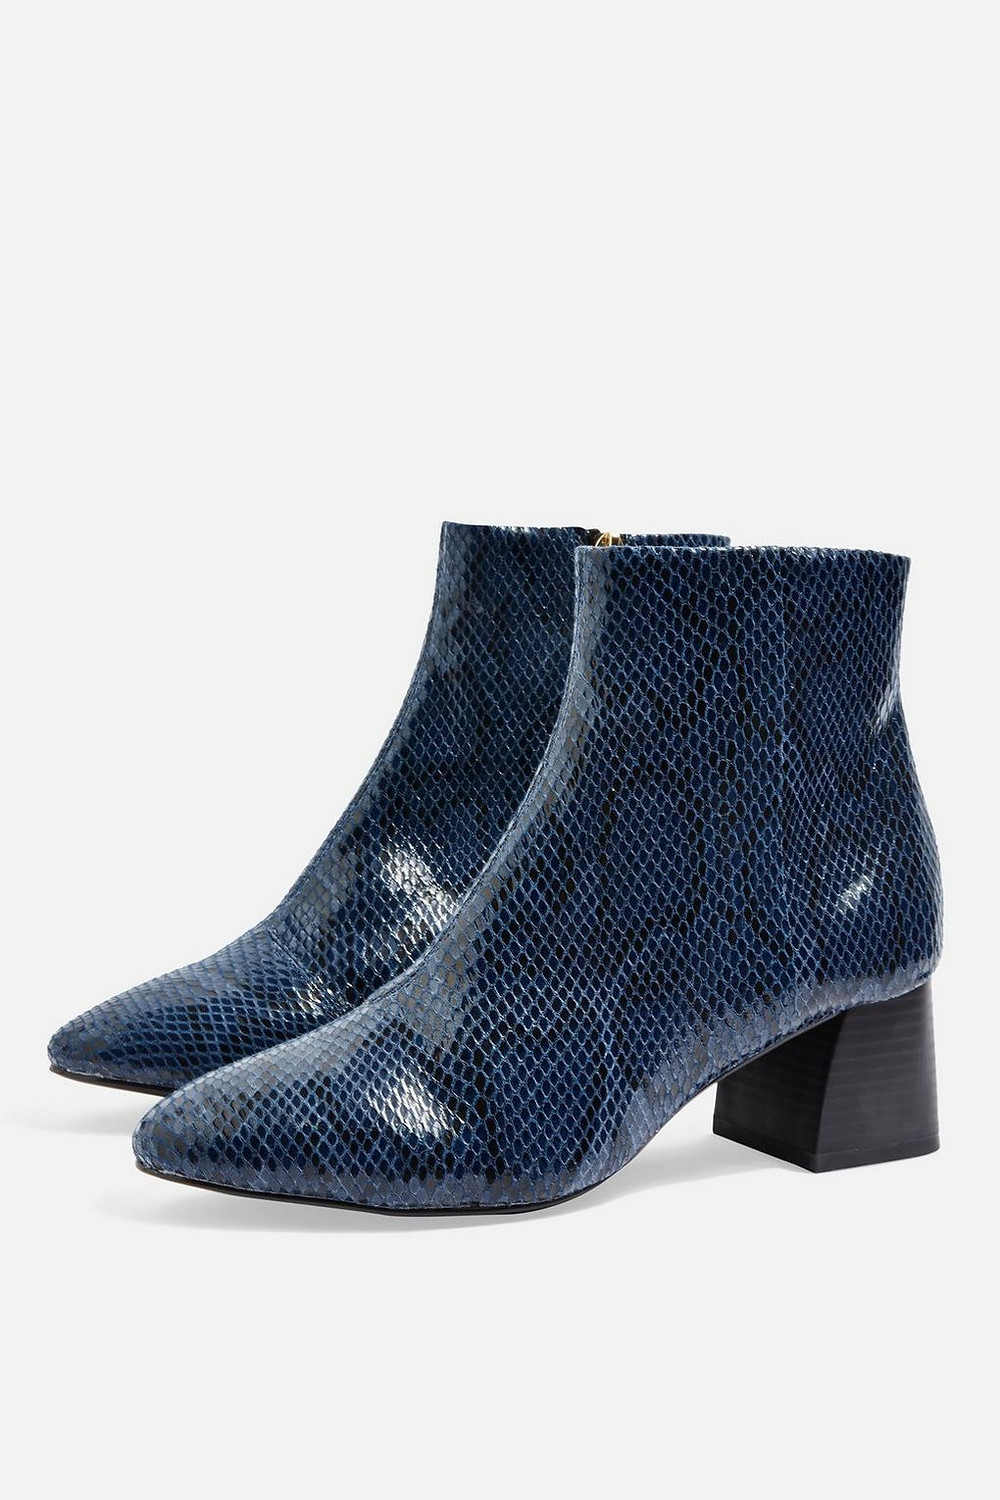 BABE Ankle Boots $65